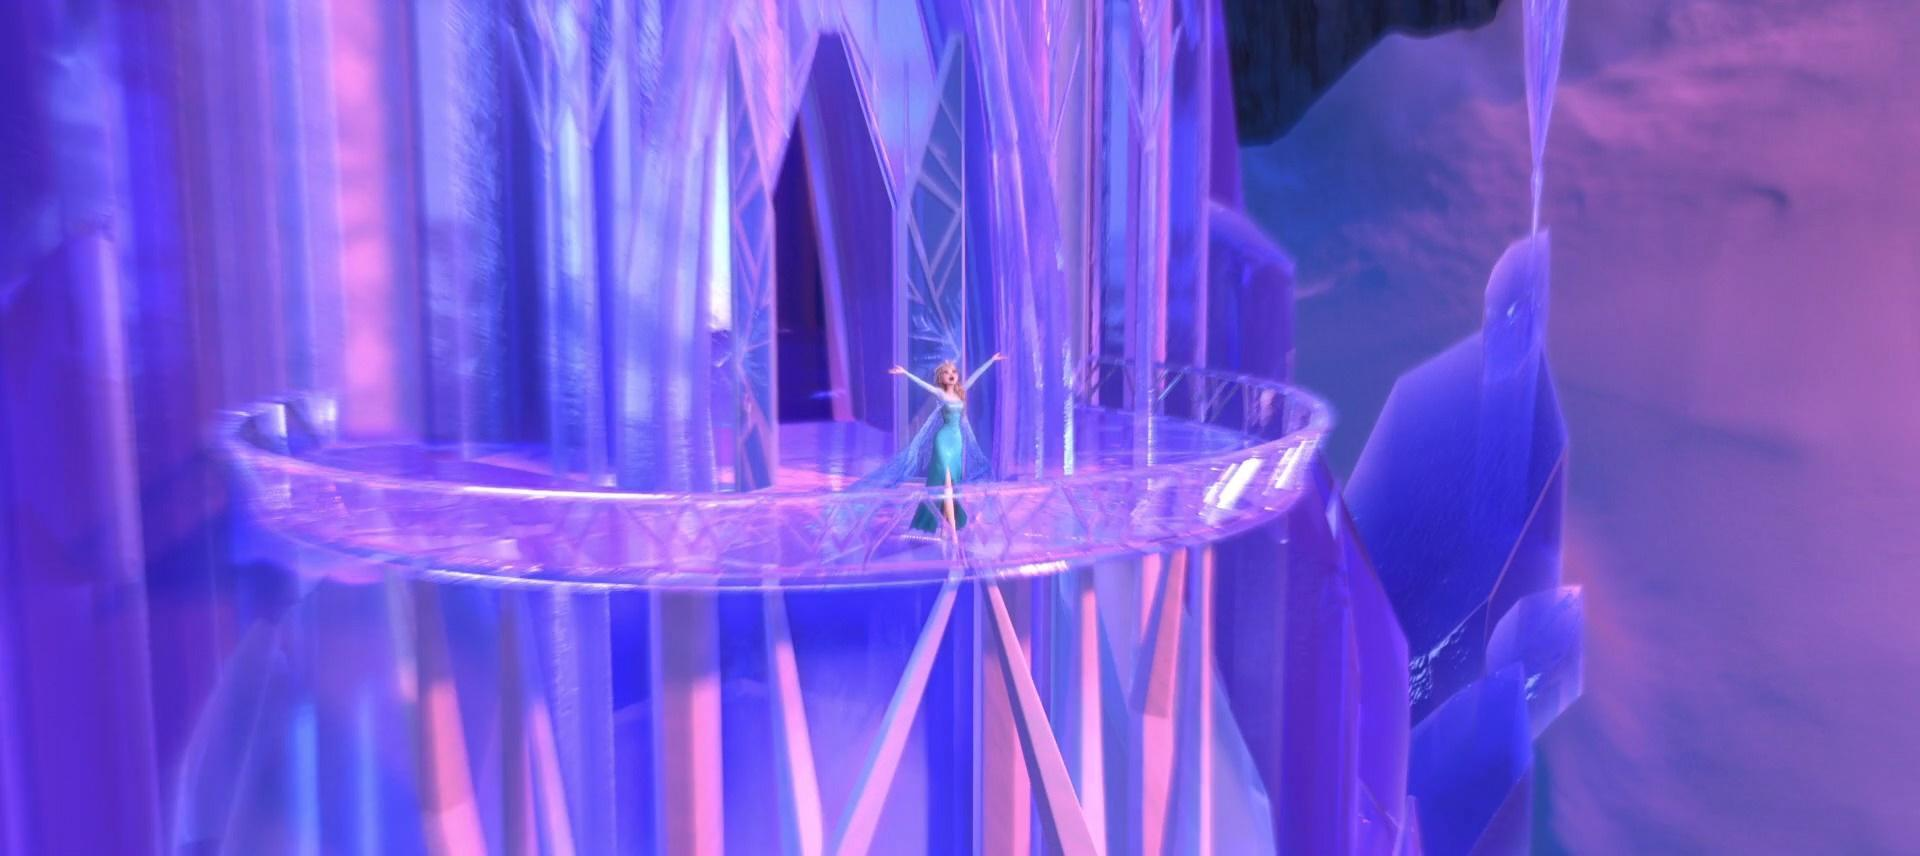 Let It Go (Queen Elsa of Arendelle)